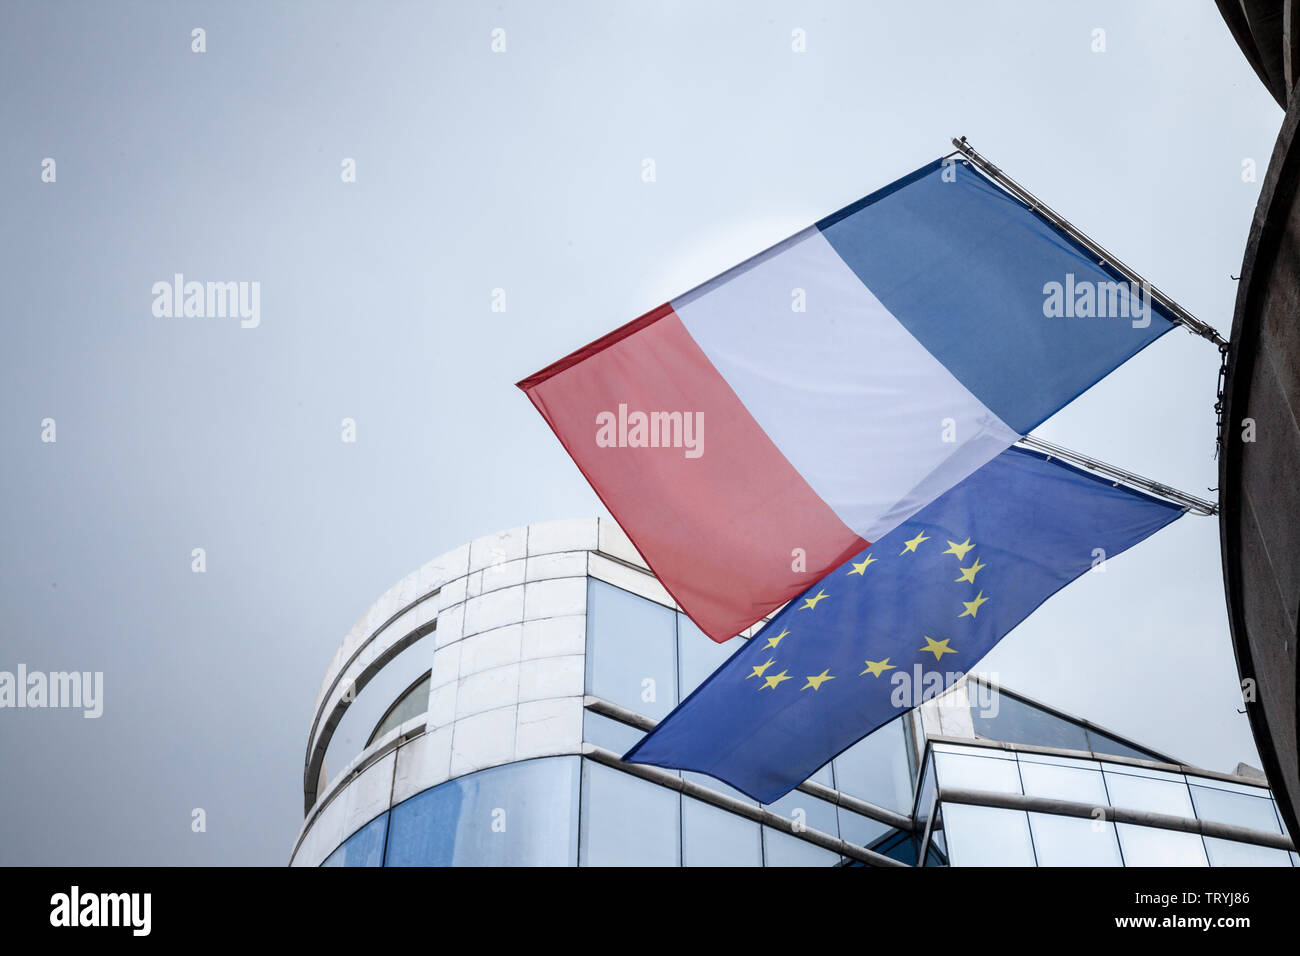 French flag and European Union flag standing in front of a business building, waiving. France is one of the main actors and members of the EU  Picture - Stock Image